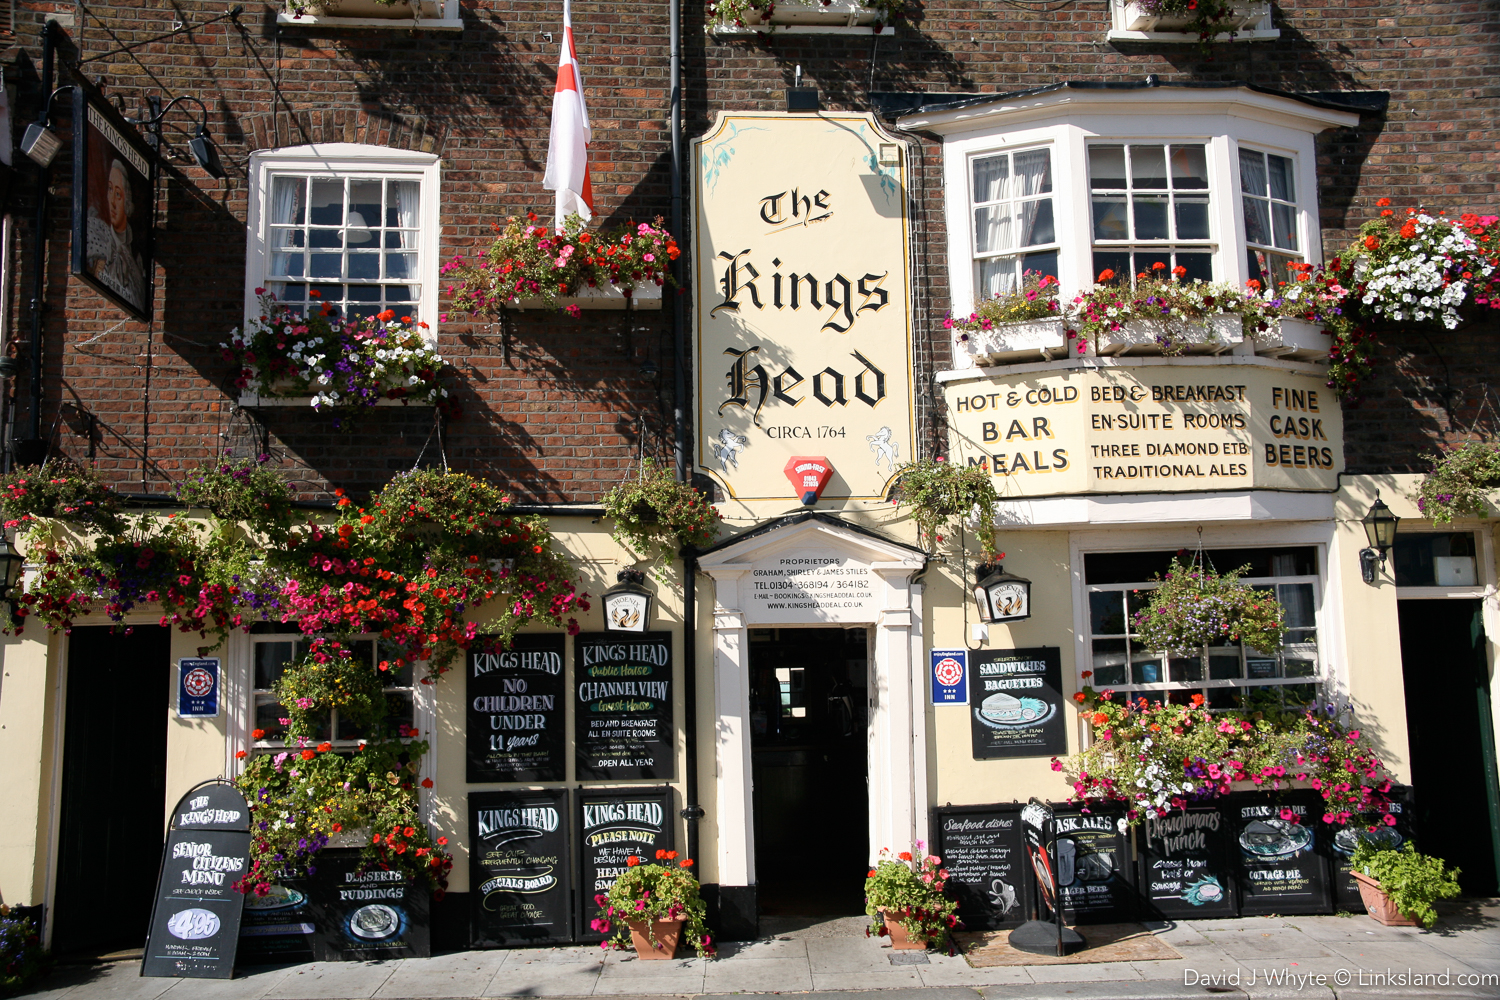 Deal's full of charming hostelries that all offer the most wonderful beers